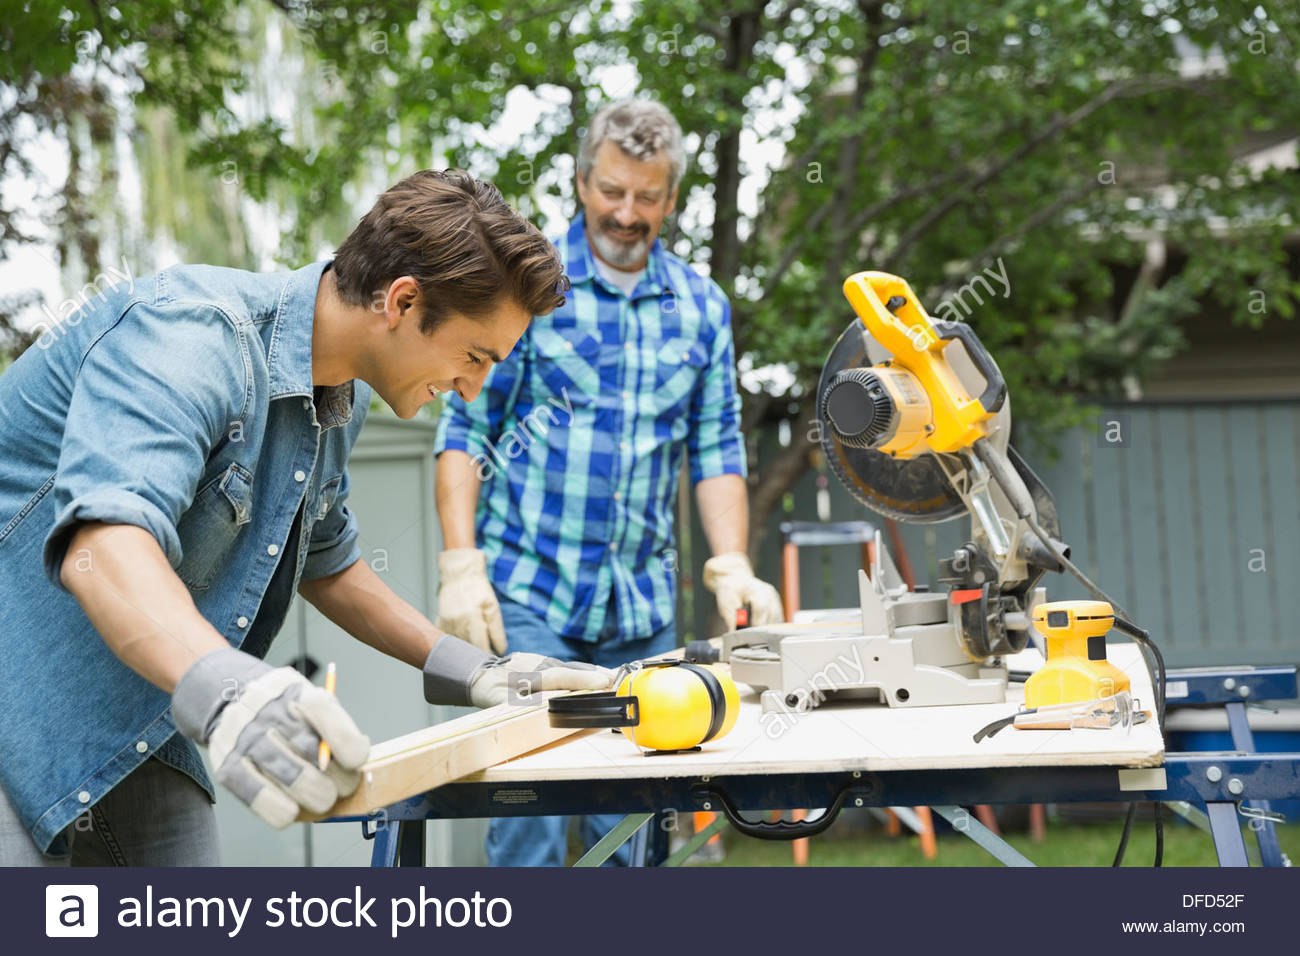 Side view of man measuring wooden plank with father in yard - Stock Image